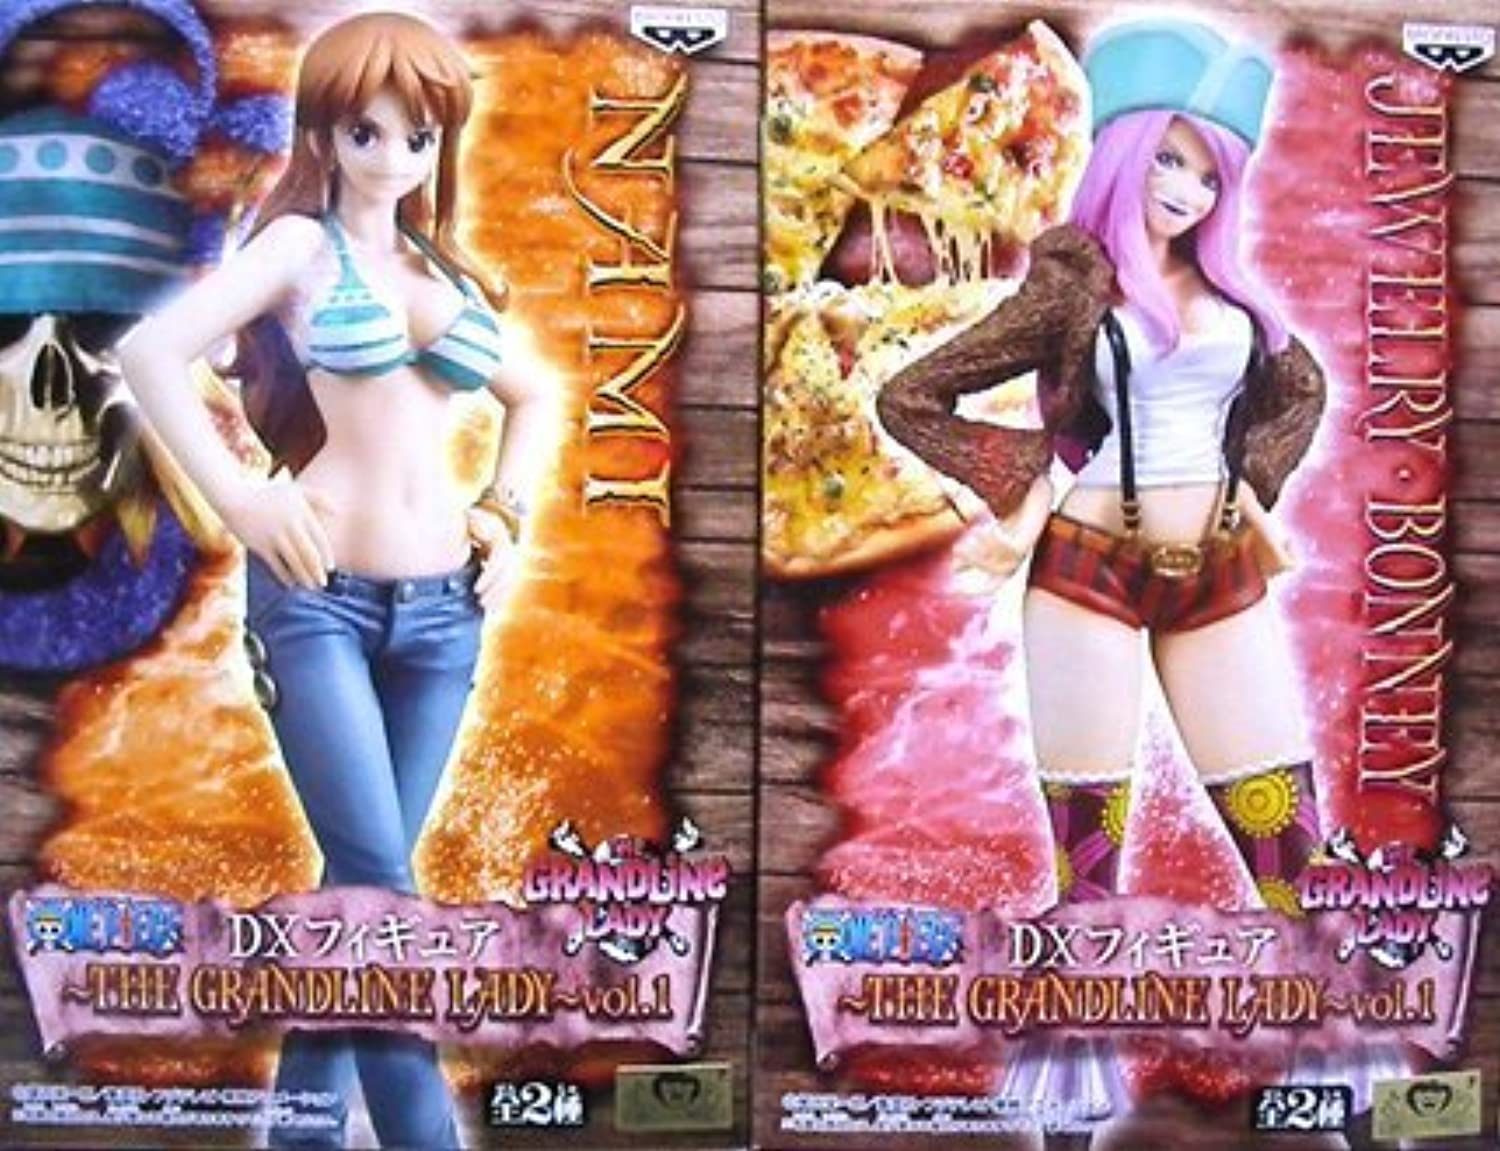 One Piece DX Figure THE GRANDLINE LADY vol.1 Nami & Jewelry Bonney (all set of 2) (japan import)